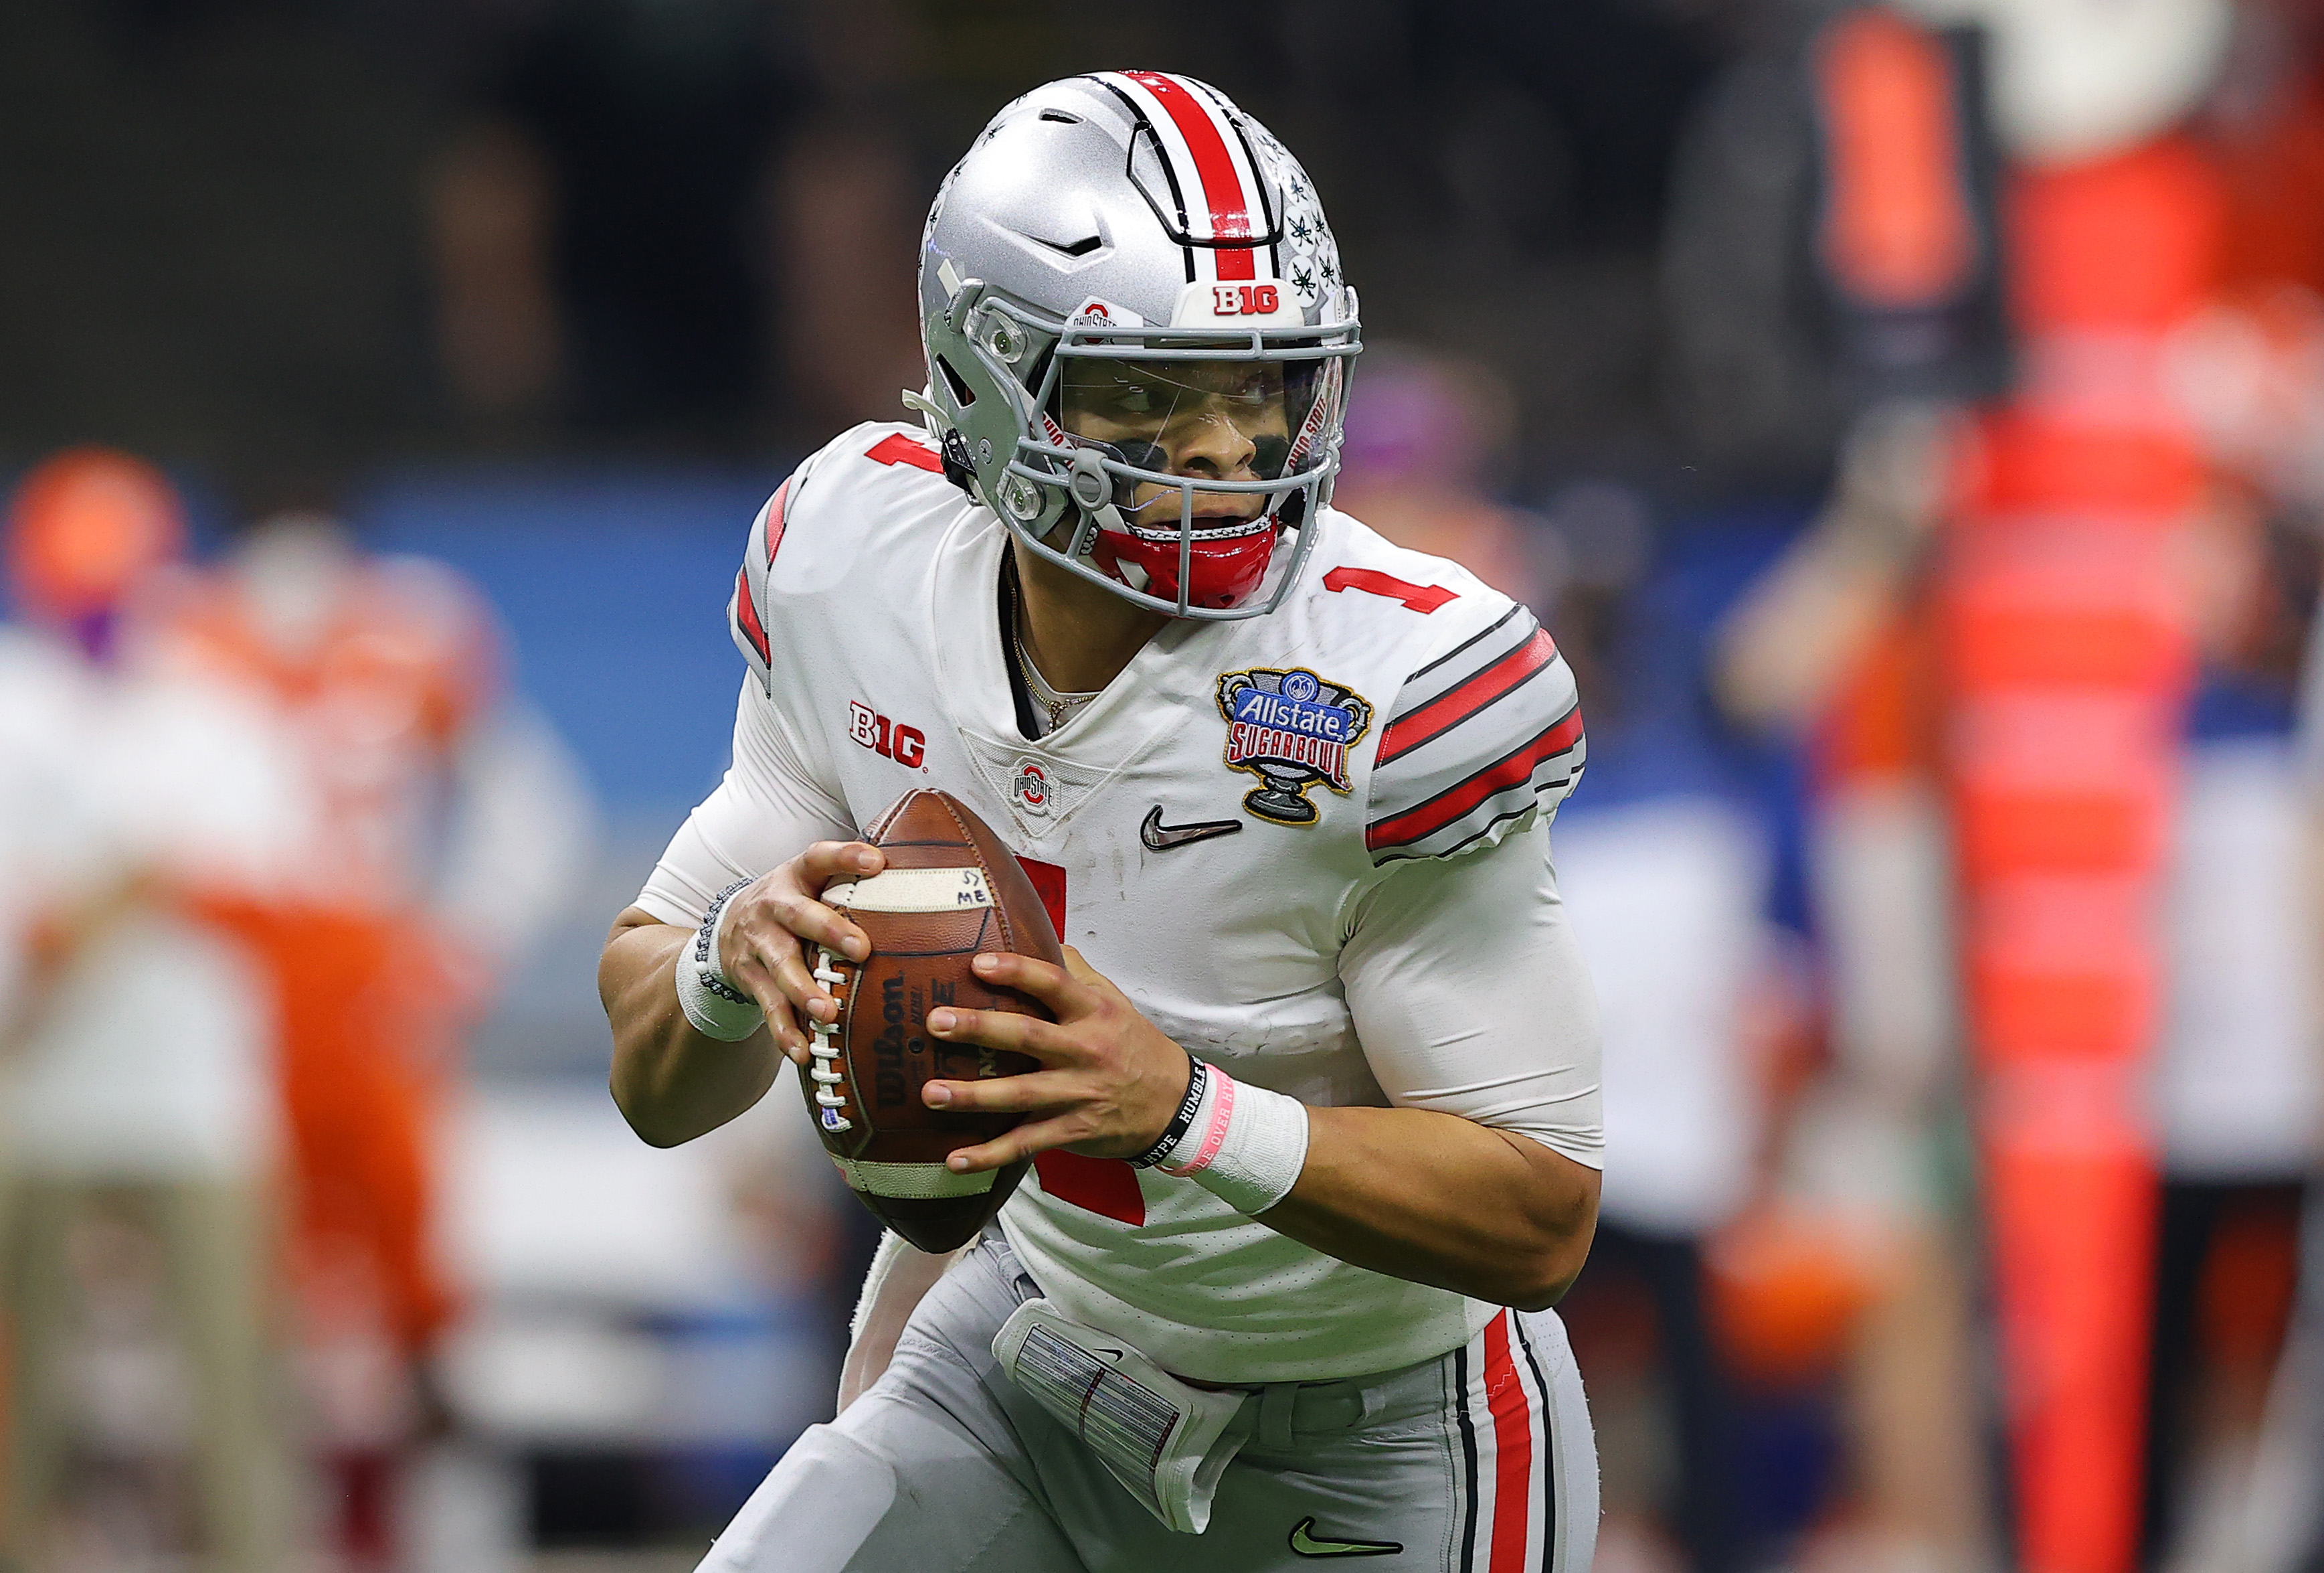 Justin Fields #1 of the Ohio State Buckeyes looks to pass against the Clemson Tigers in the first half during the College Football Playoff semifinal game at the Allstate Sugar Bowl at Mercedes-Benz Superdome on January 01, 2021 in New Orleans, Louisiana.